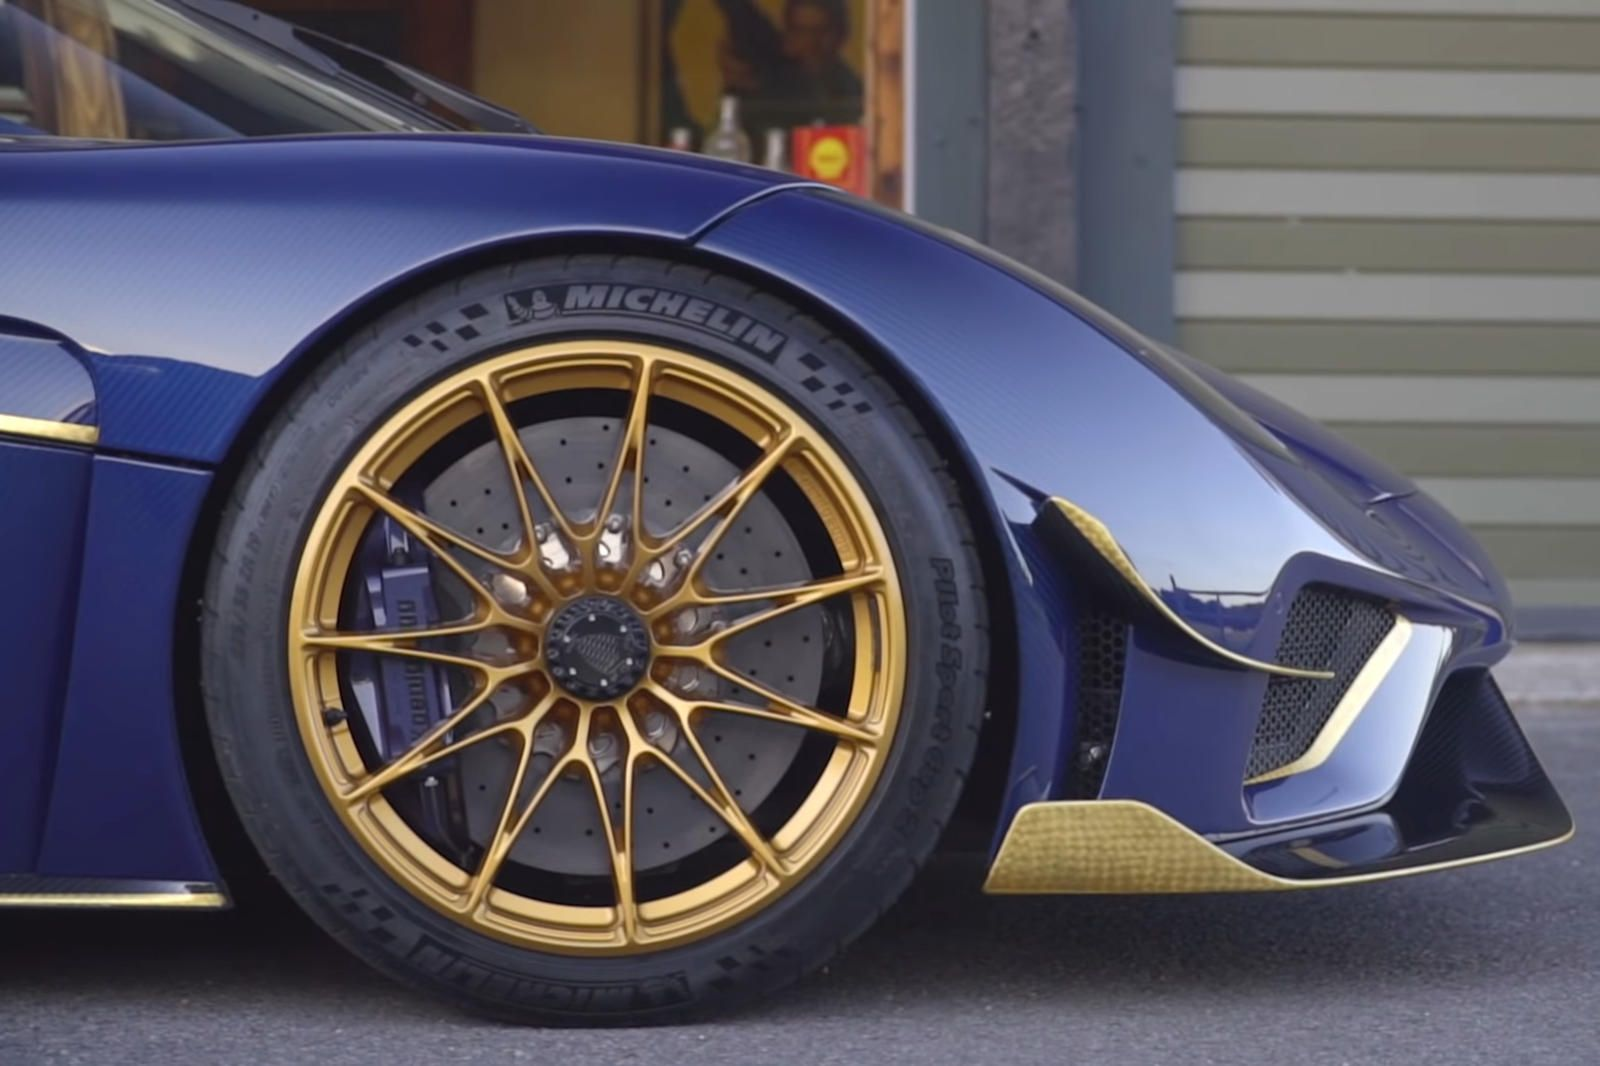 This Custom Koenigsegg Regera Took Three Years To Build. This is also the first Koenigsegg Regera to ride on gold wheels.